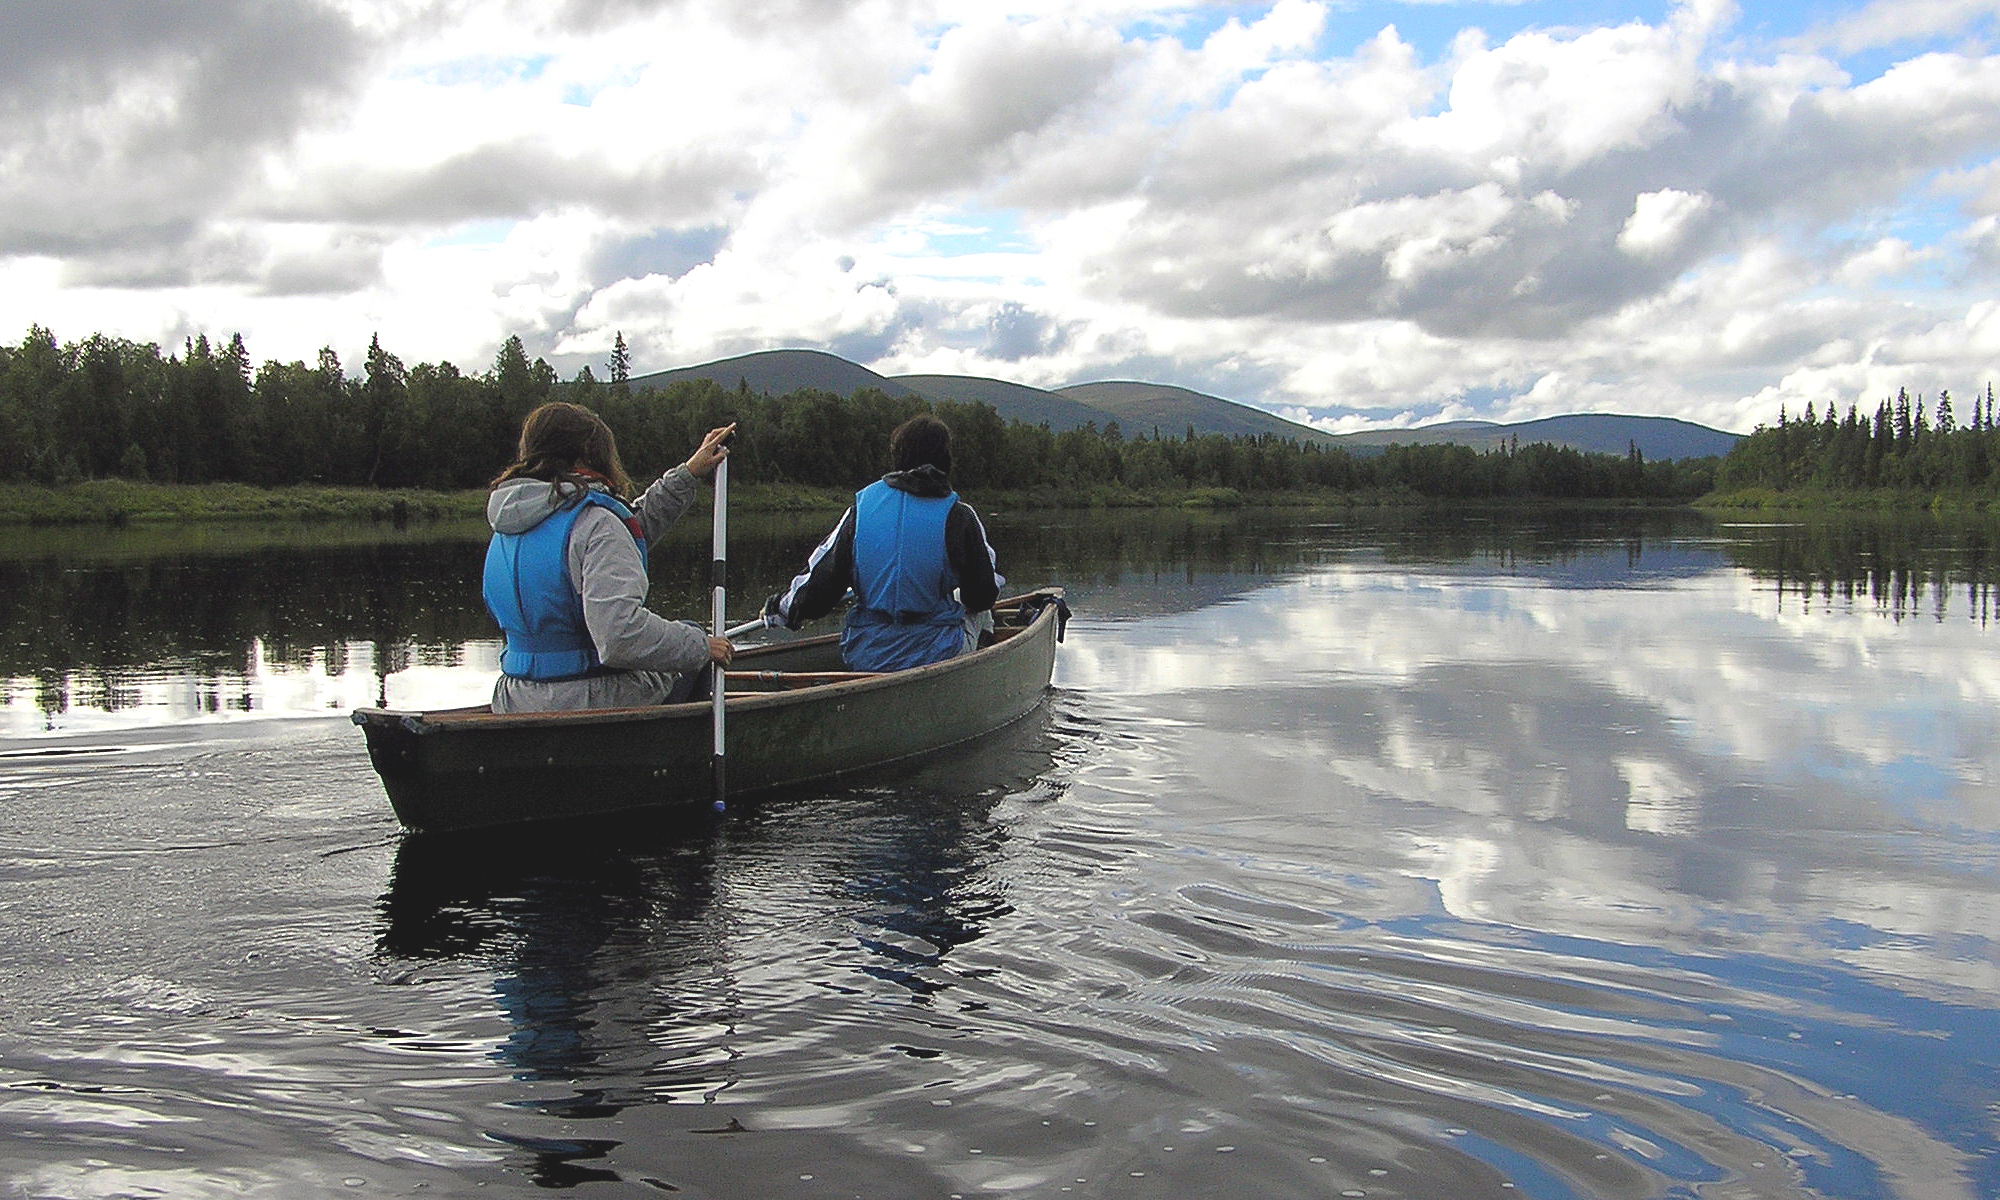 Canoeing Day in Lapland